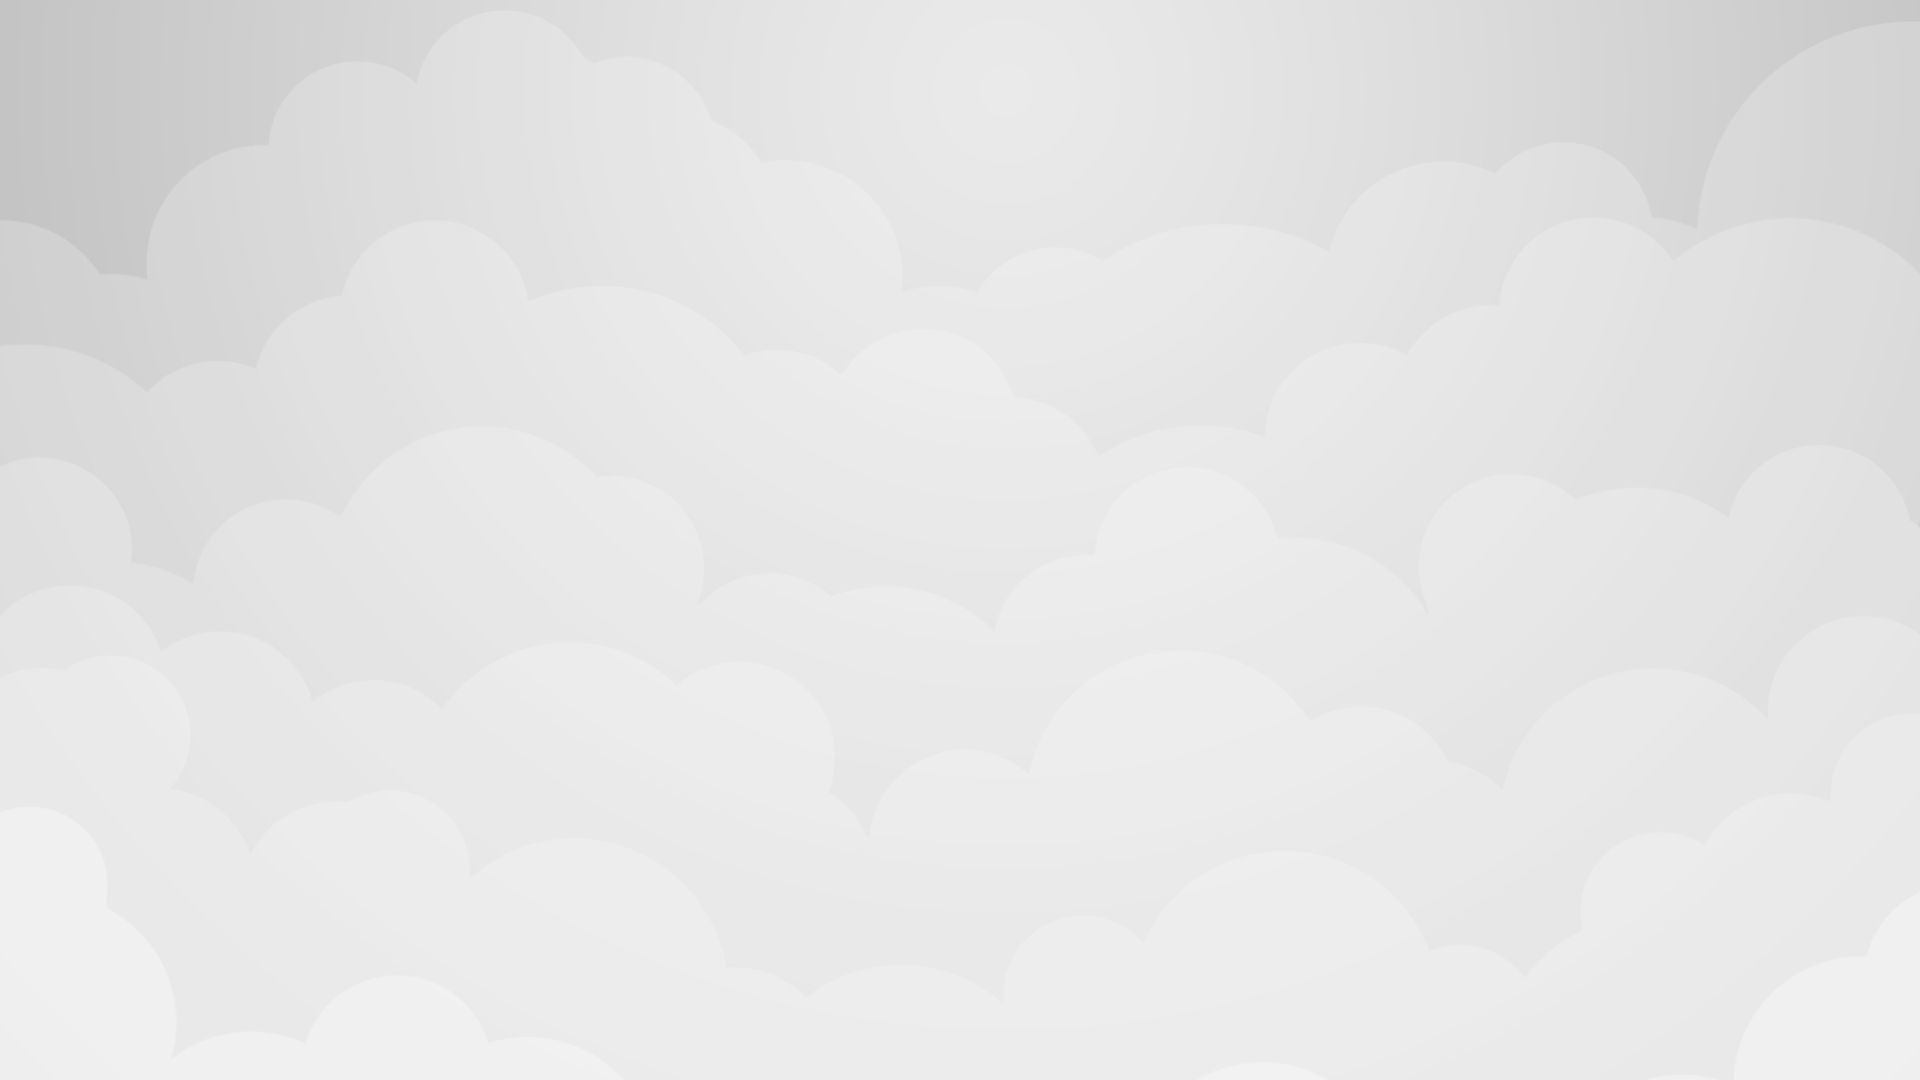 White-Abstract-HD-Wallpapers.jpg